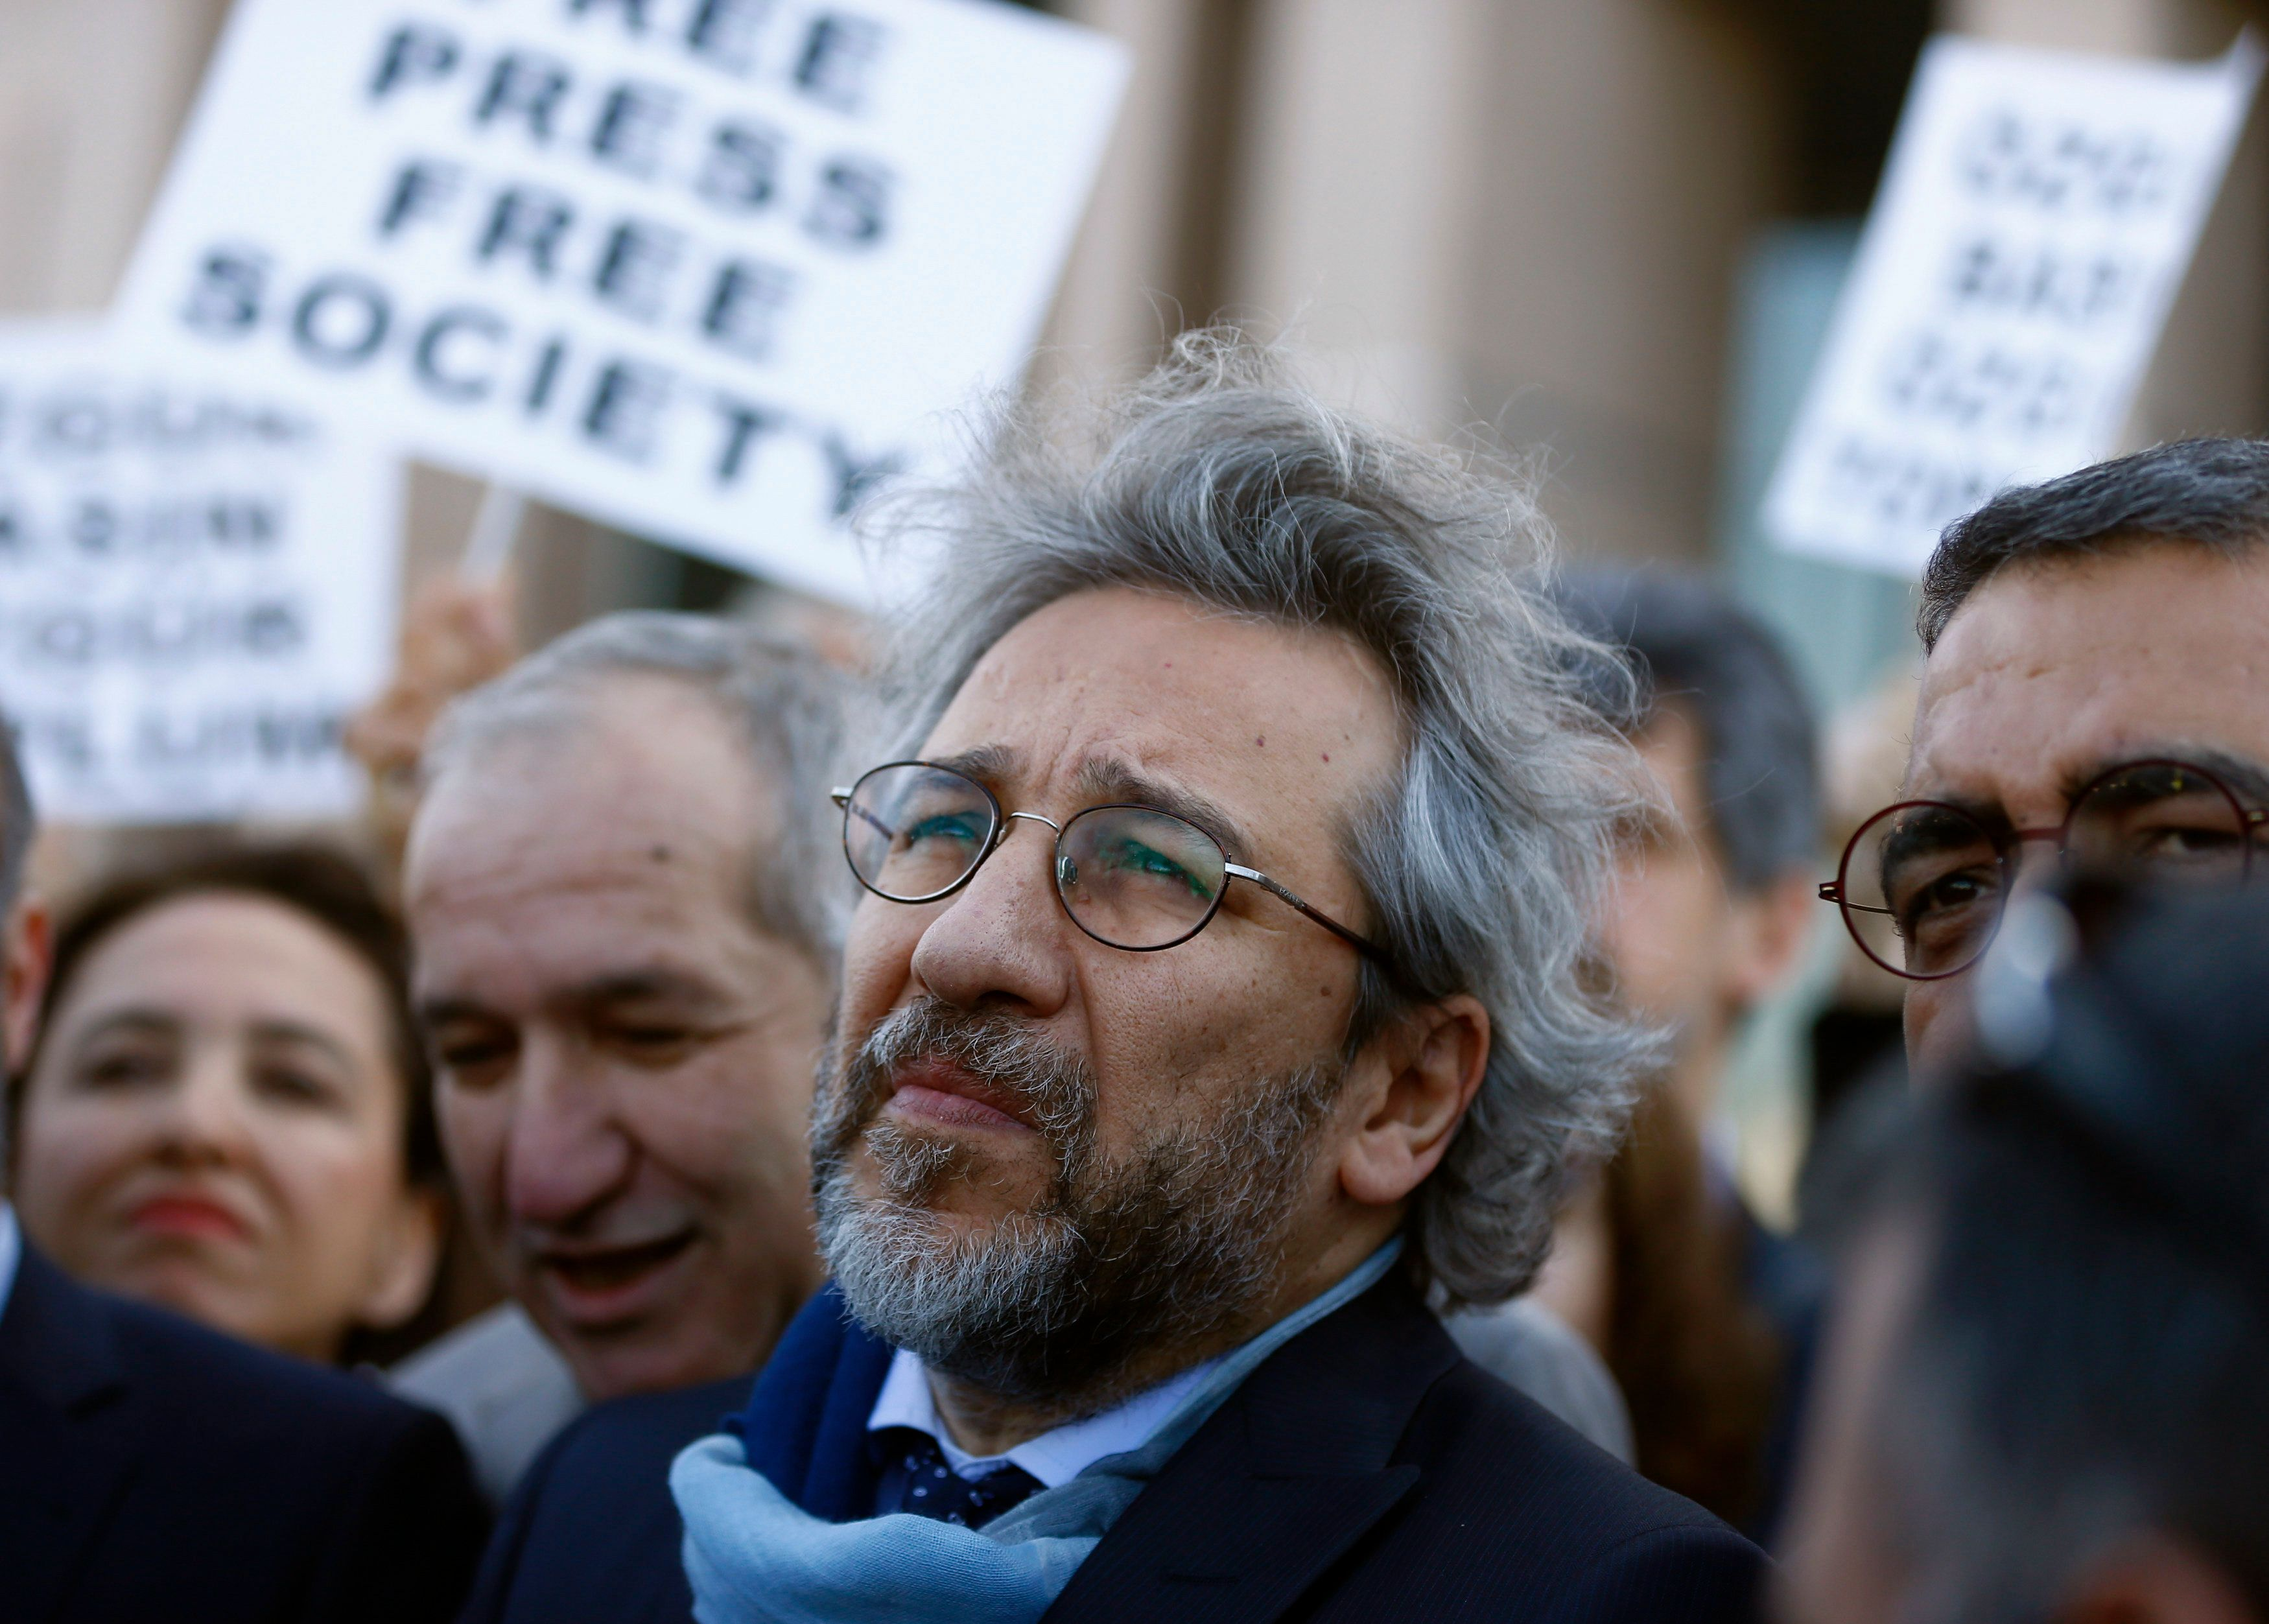 Can Dundar, editor-in-chief of Cumhuriyet, arrives at the Justice Palace for his trial in Istanbul, Turkey April 1, 2016. REUTERS/Osman Orsal